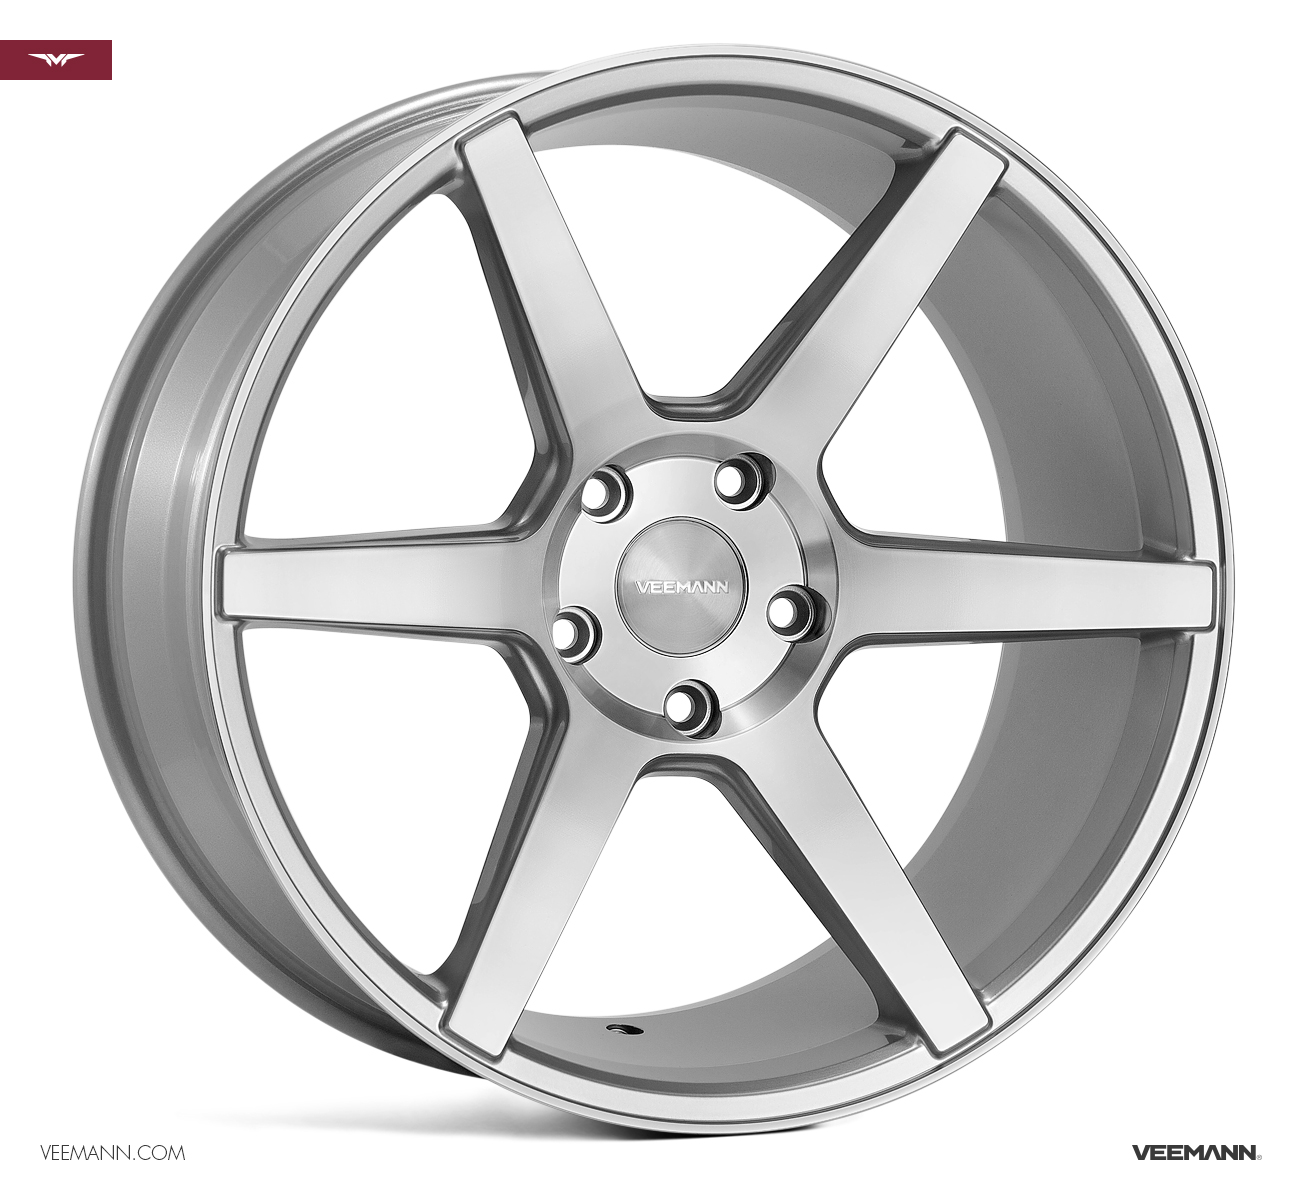 "NEW 19"" VEEMANN V-FS3 6 SPOKE CONCAVE ALLOY WHEELS IN SILVER WITH POLISHED FACE 8.5"" ALL ROUND"